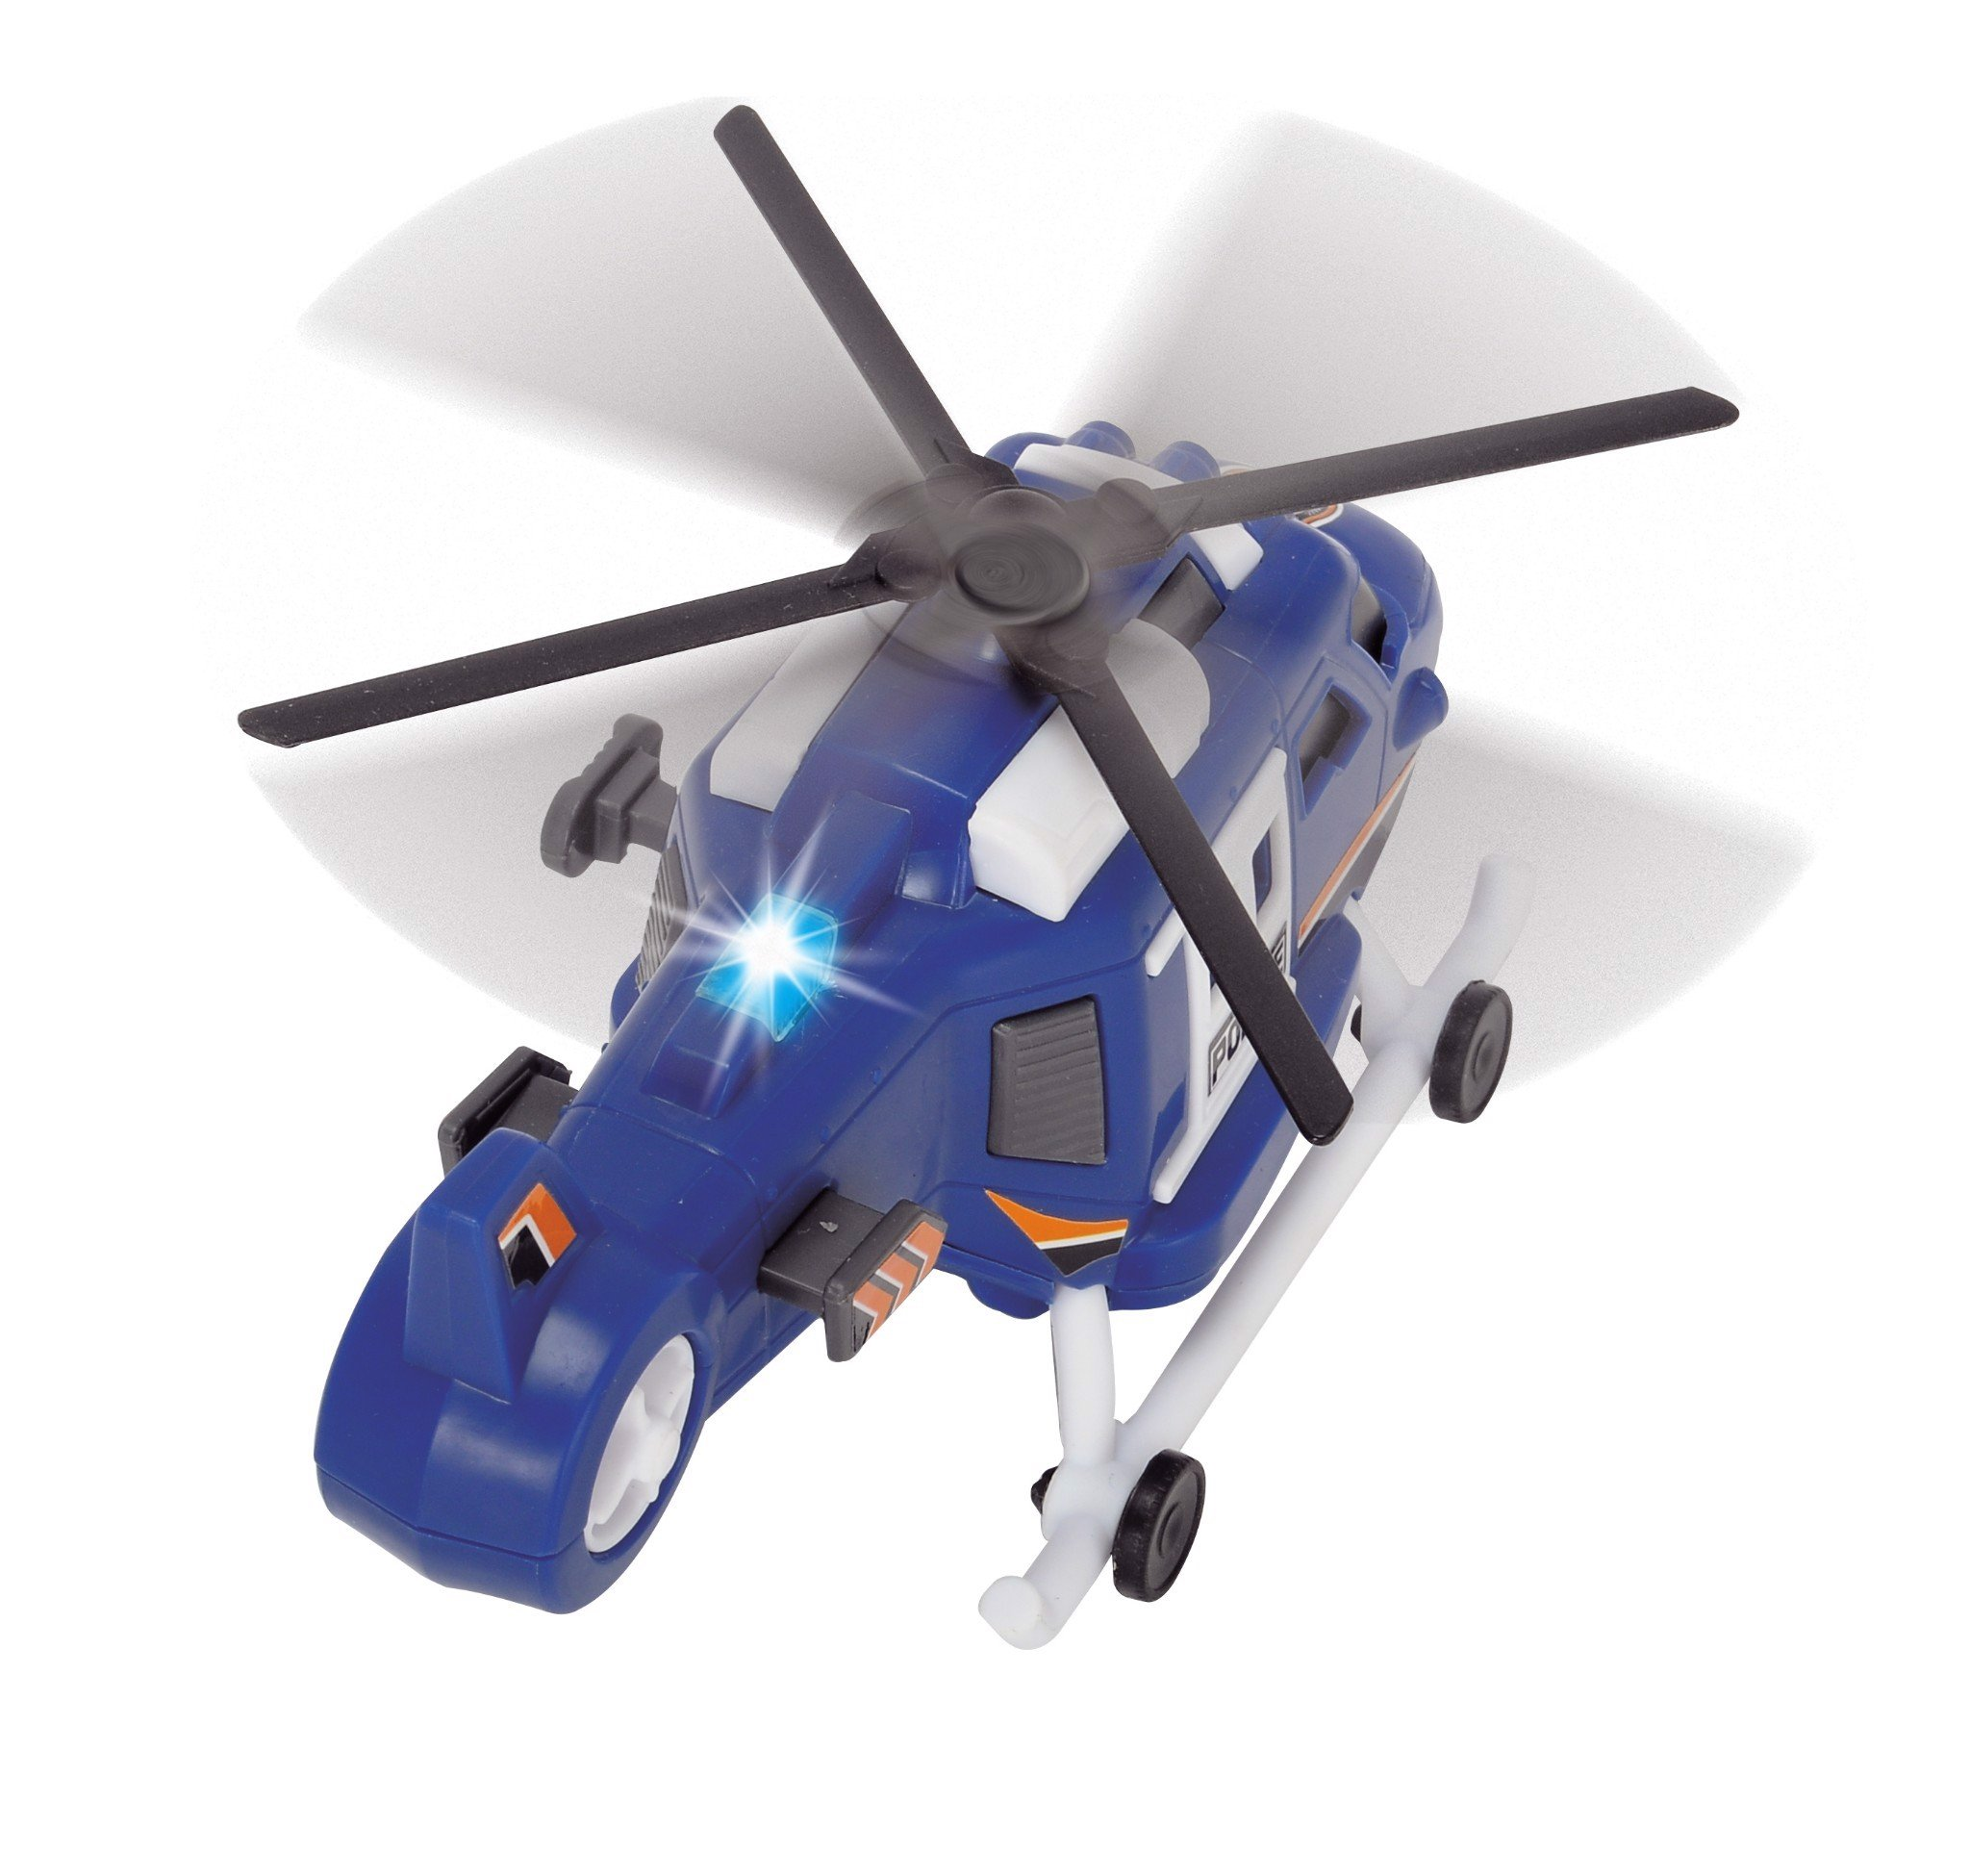 203302016 Helicopter|6pcs